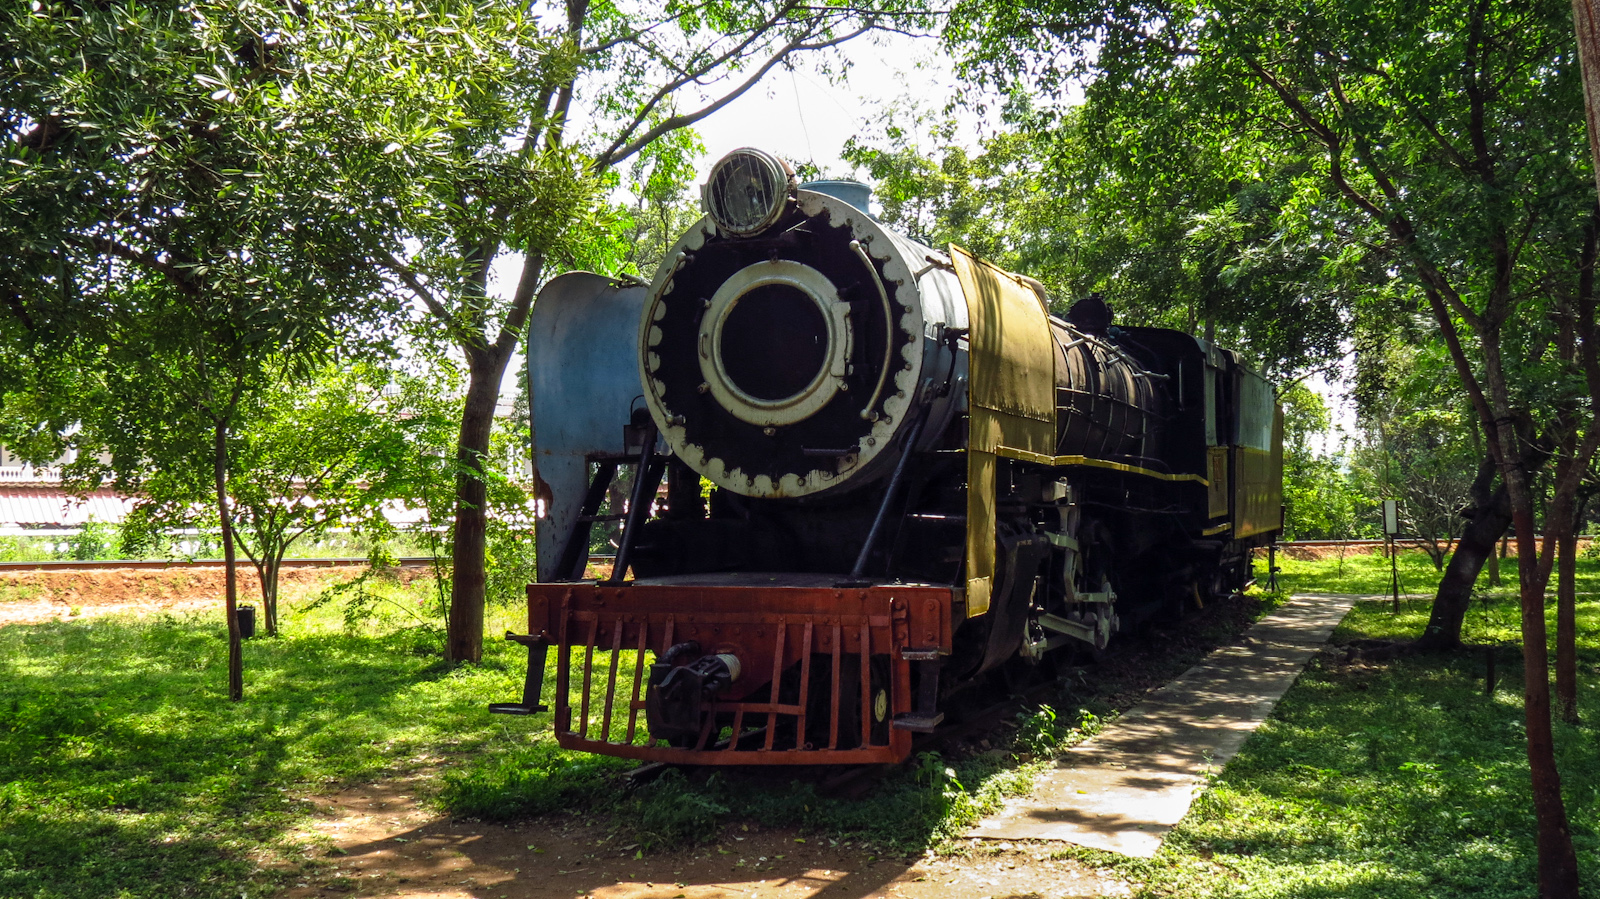 train-museum-engine-mysore